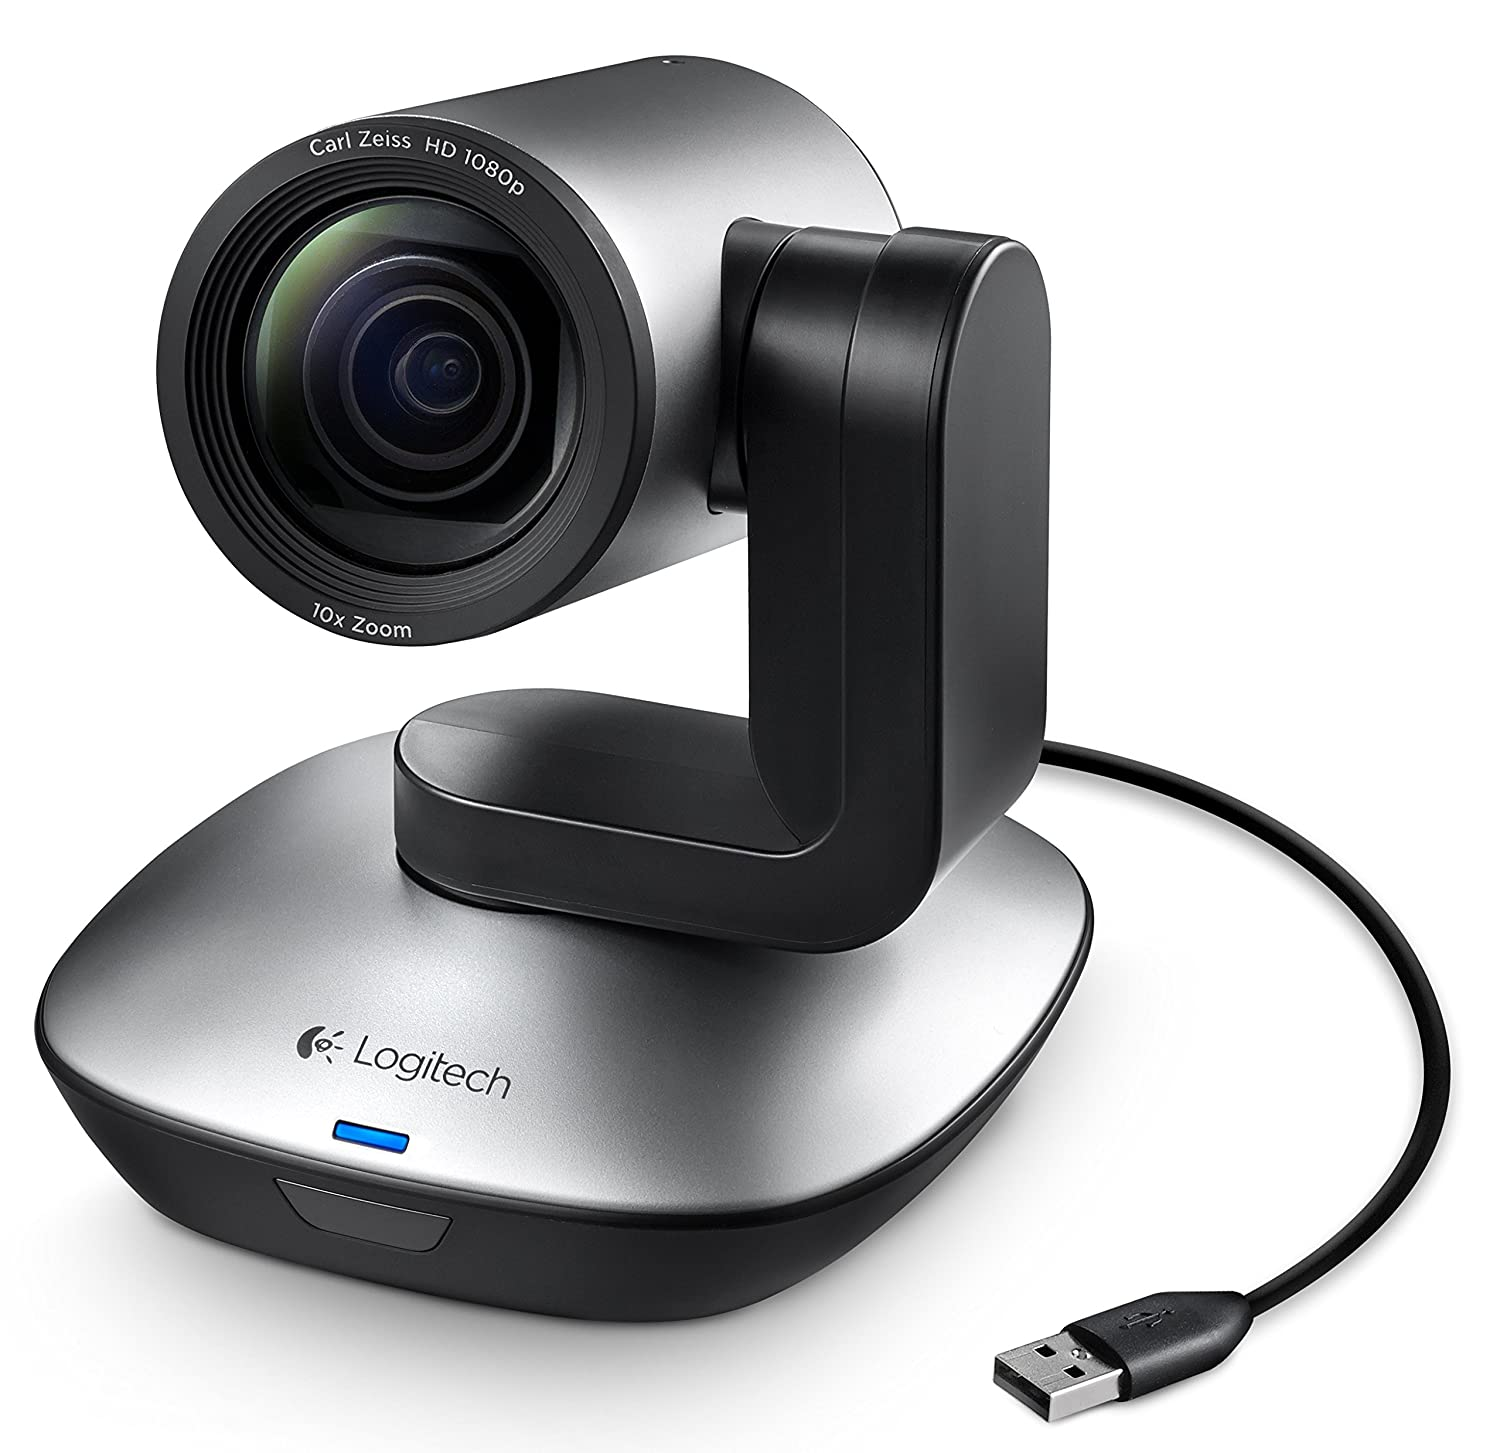 Amazon.com: Logitech PTZ Pro Camera - USB HD 1080p PTZ Video ...